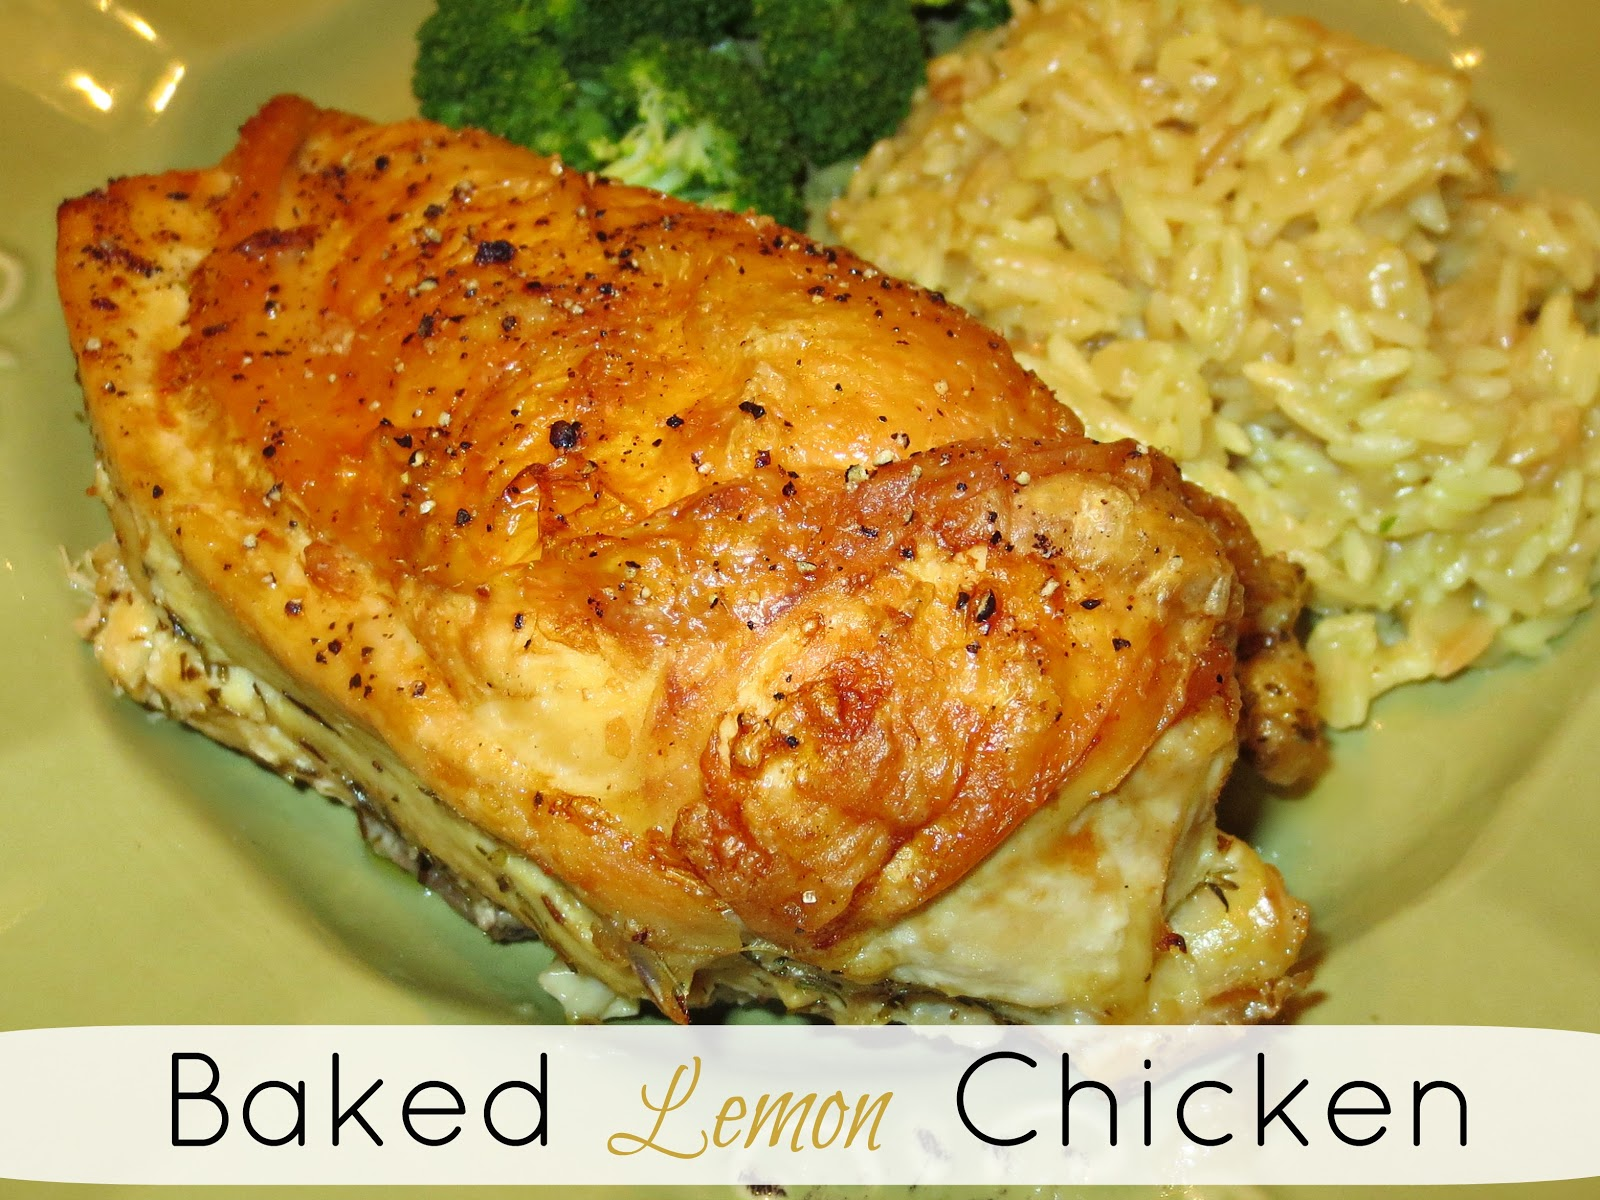 Kaitlin in the Kitchen: Baked Lemon Chicken